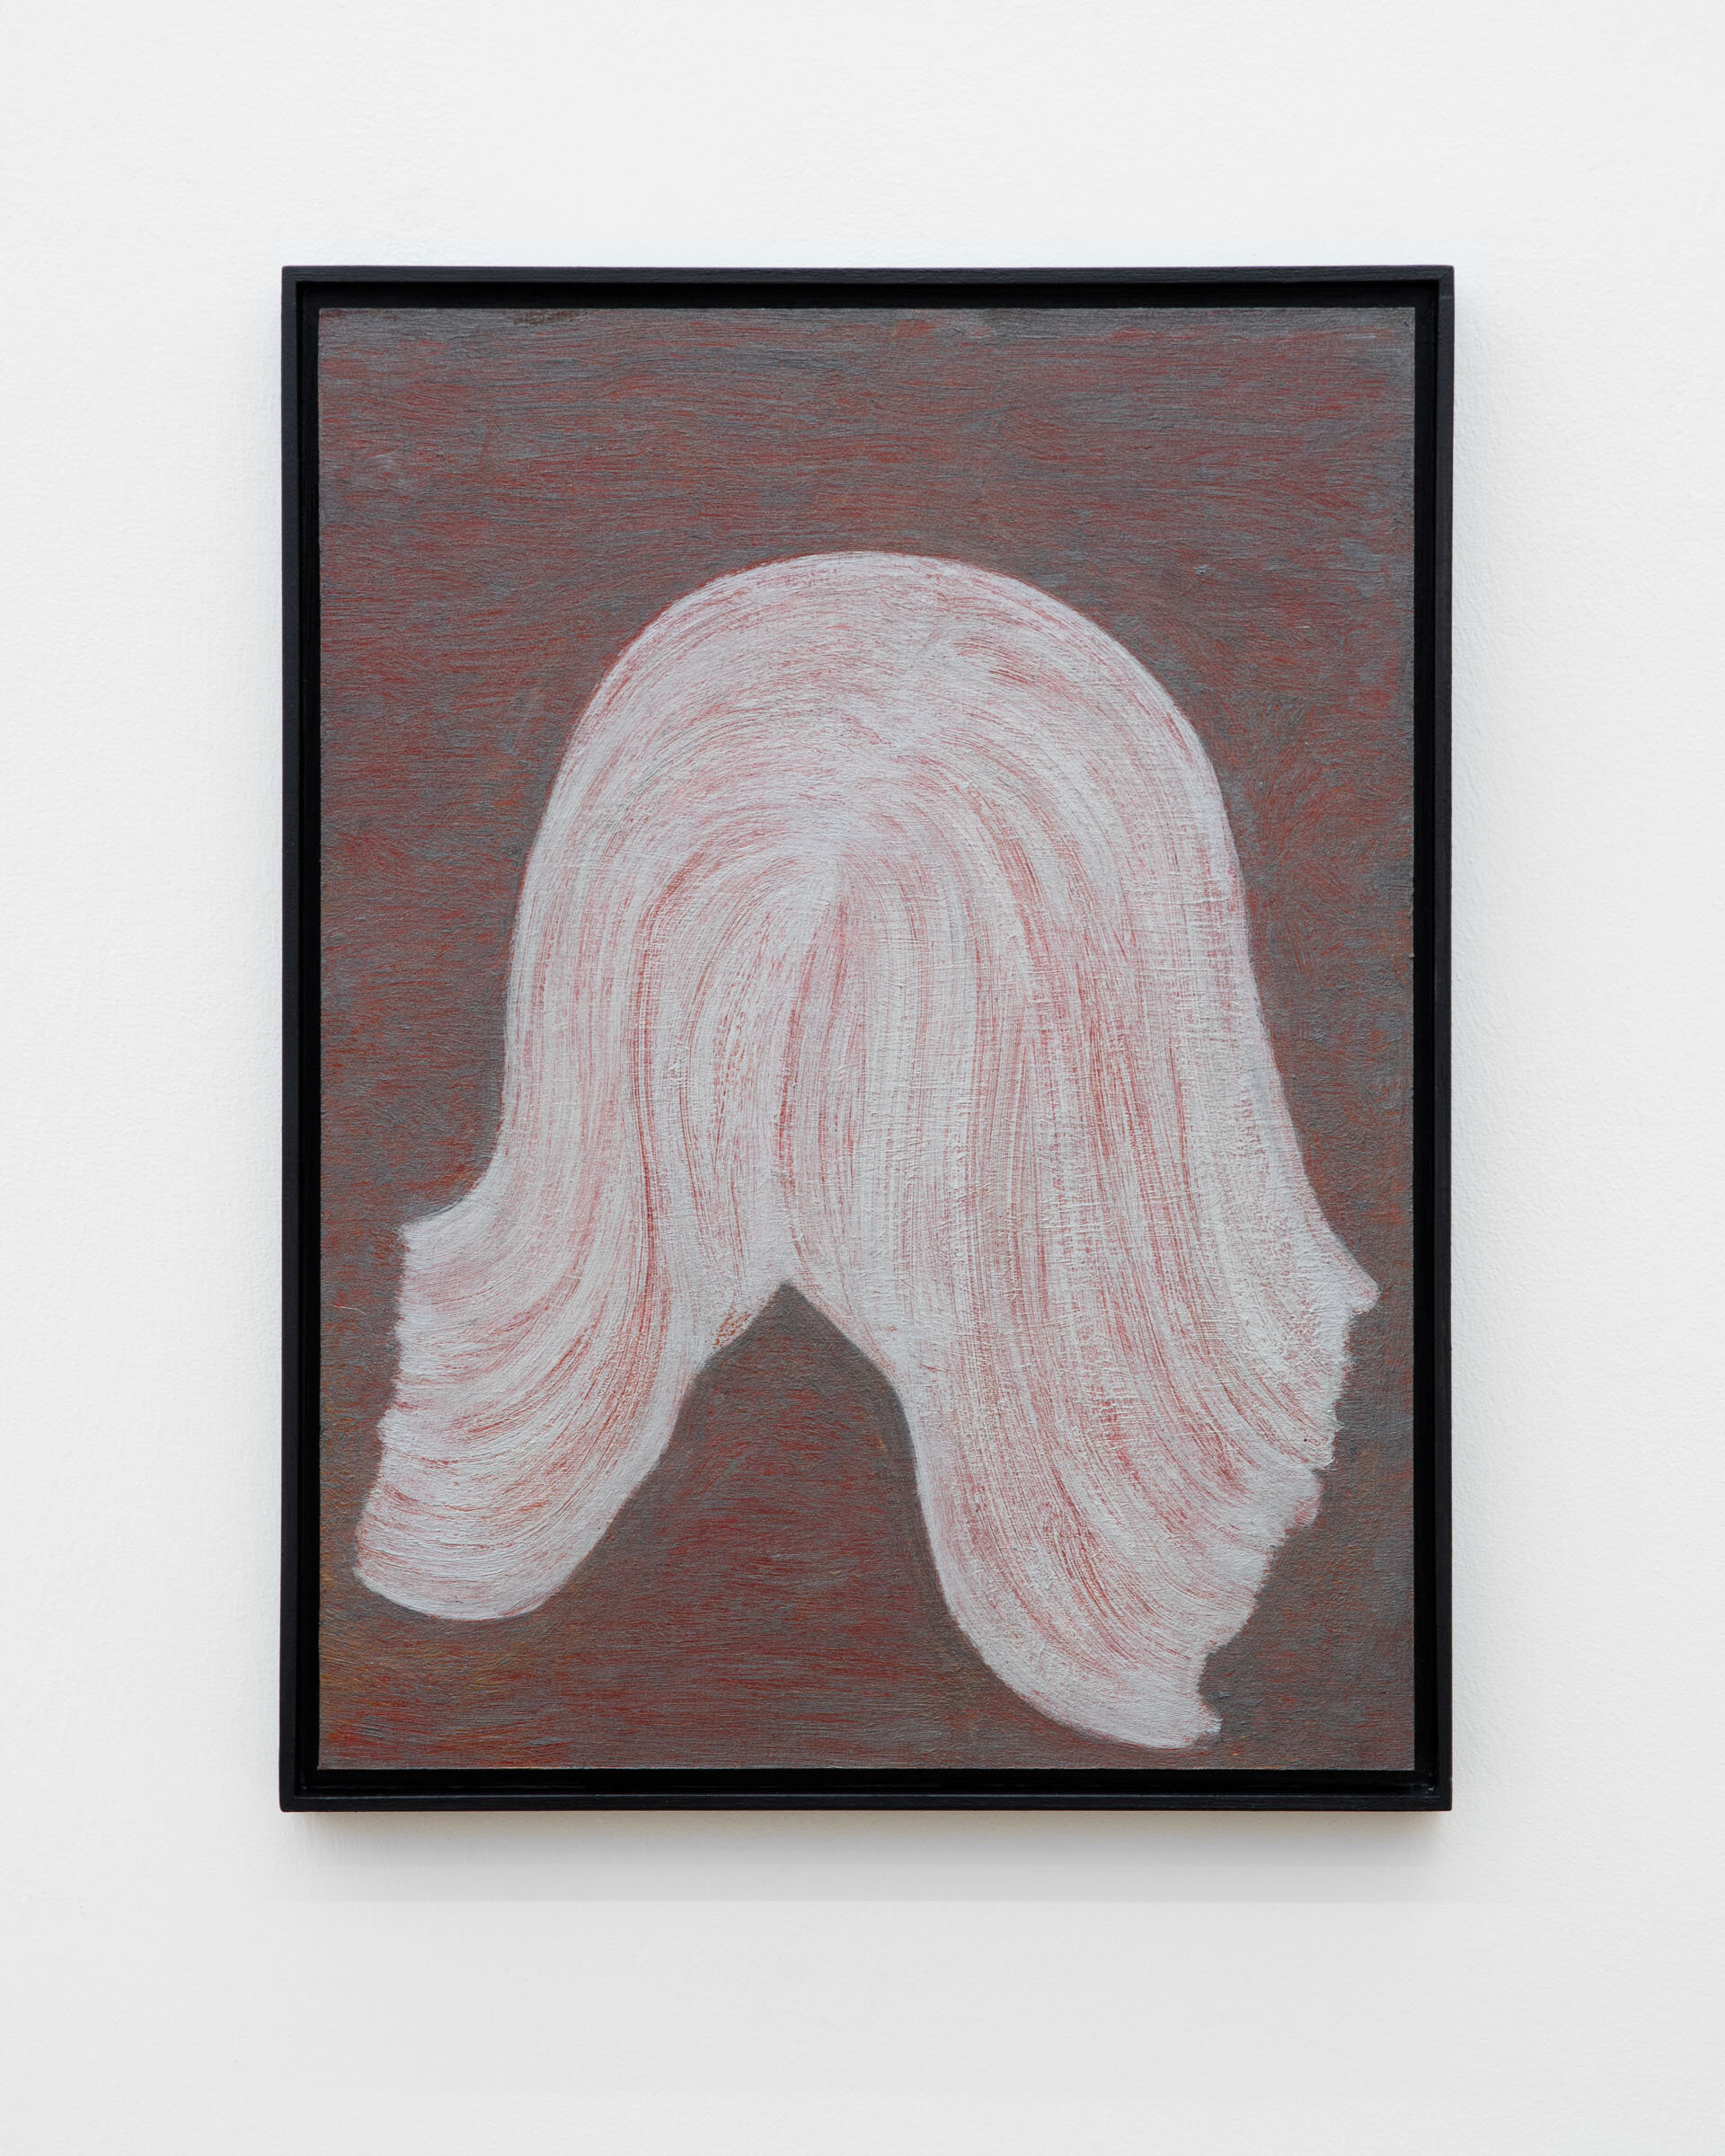 Veronika Hilger, untitled, 2019, oil on paper on MDF in artists frame, 40 x 30 cm